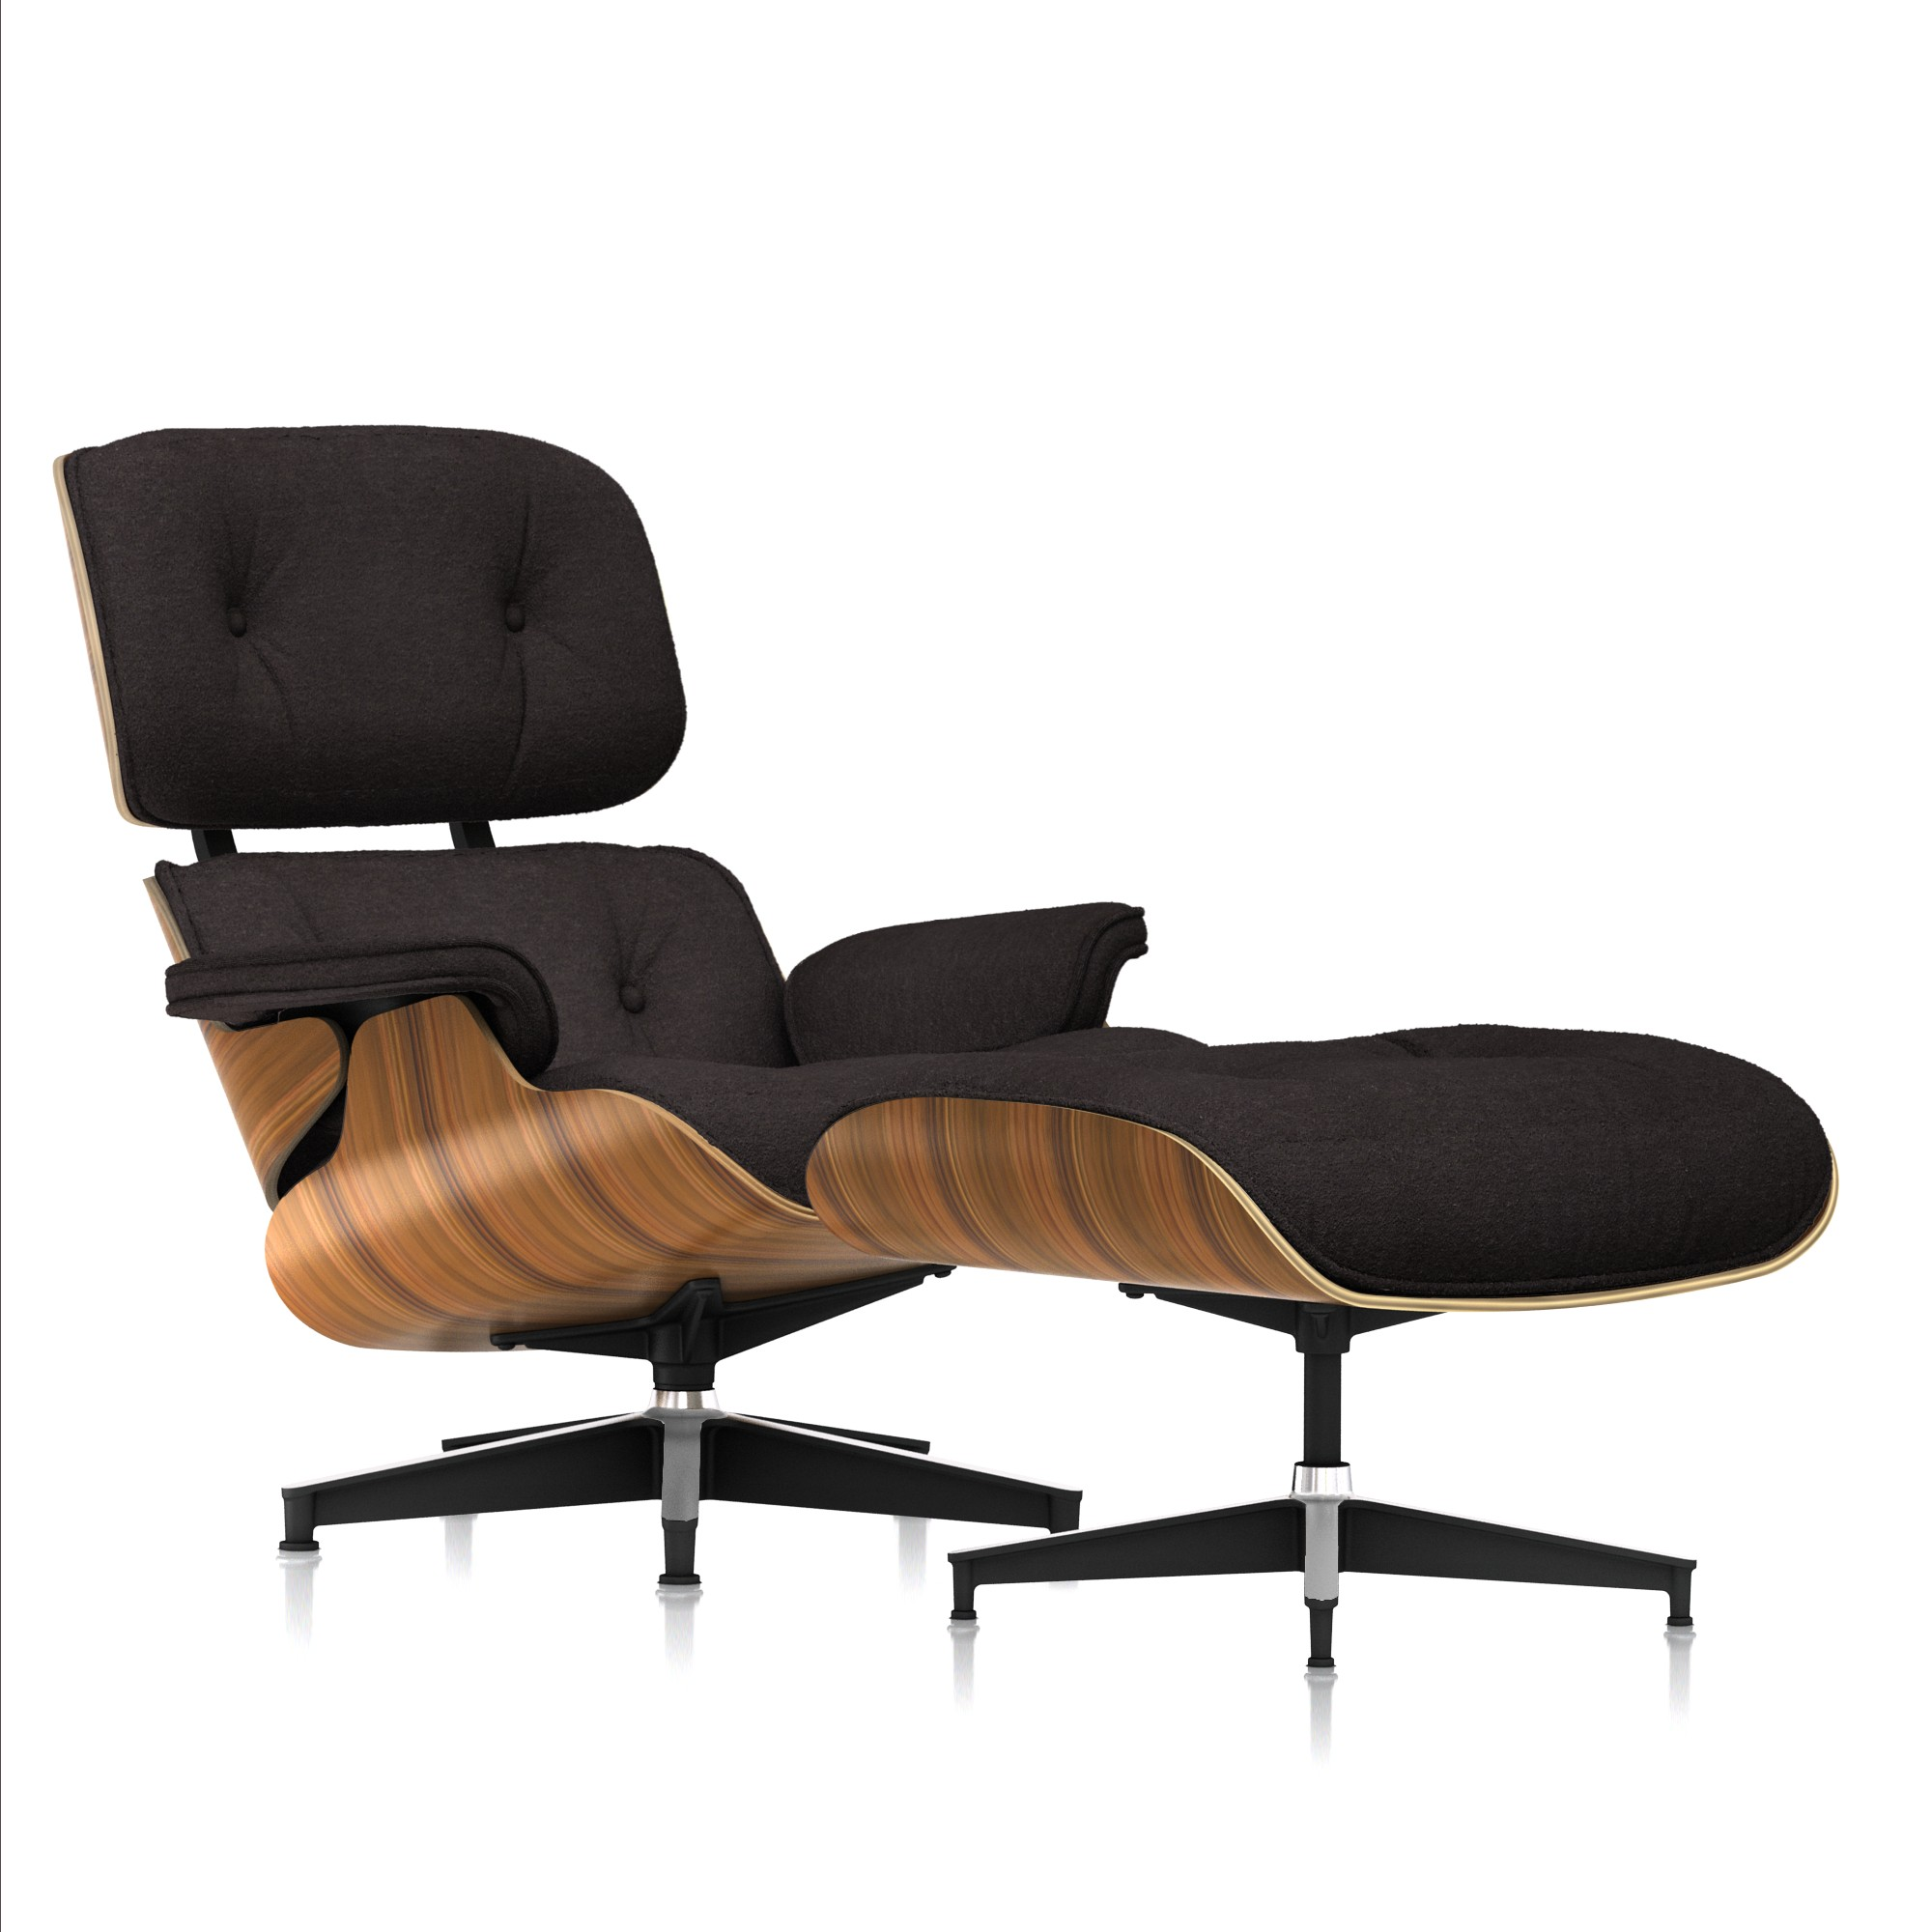 Eames Lounge Chair and Ottoman in Peat Mohair Supreme Tall by Herman Miller